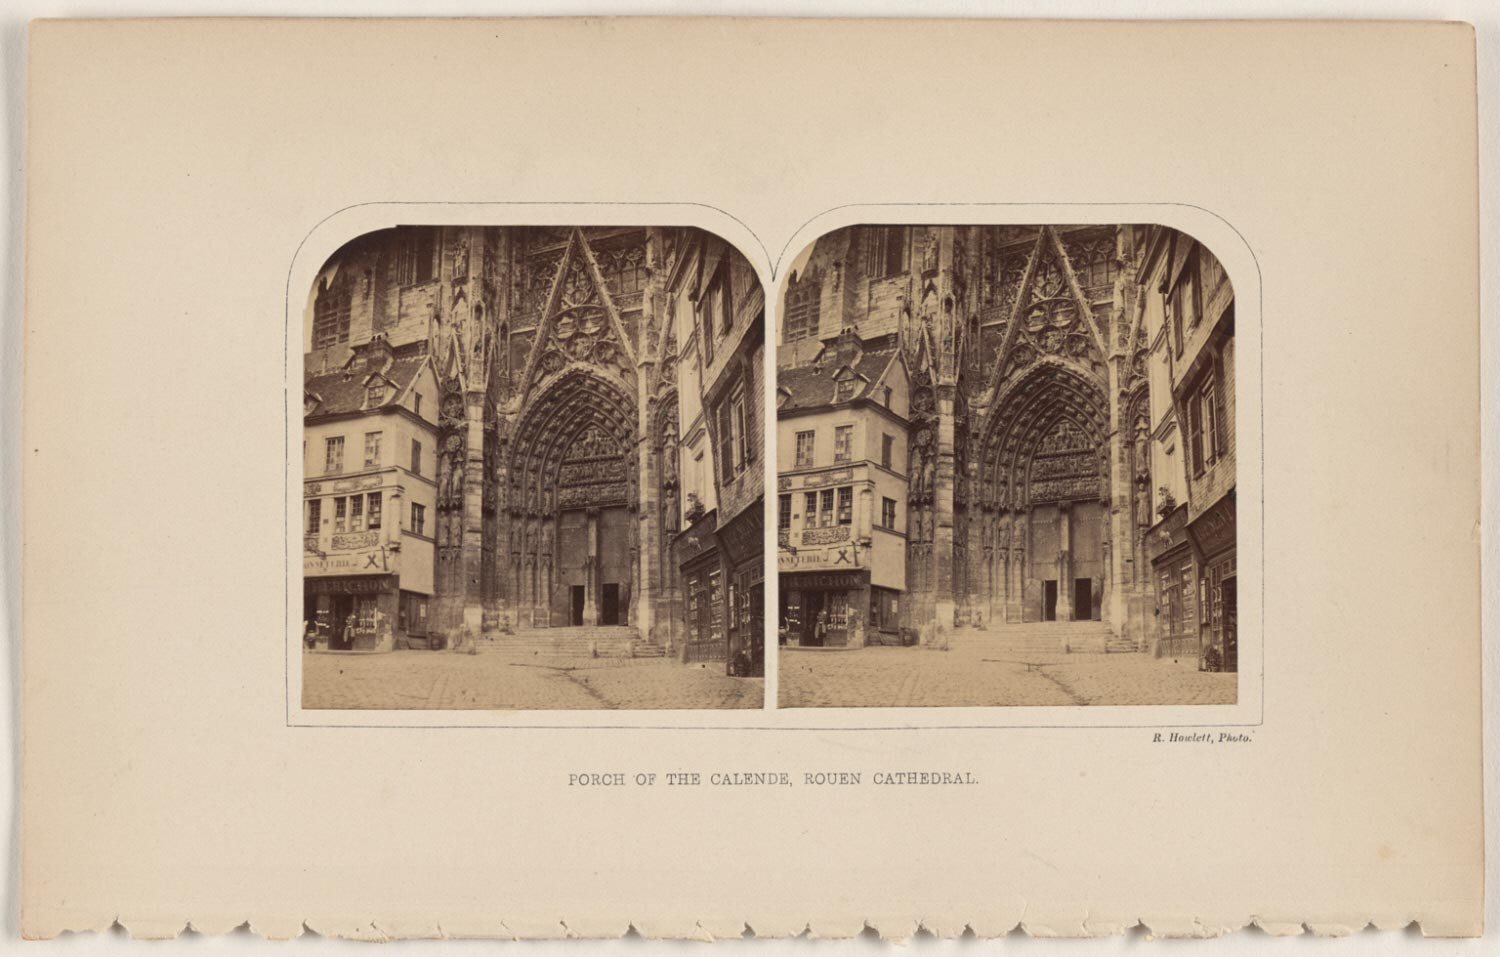 Porch of the Calende, Rouen Cathedral